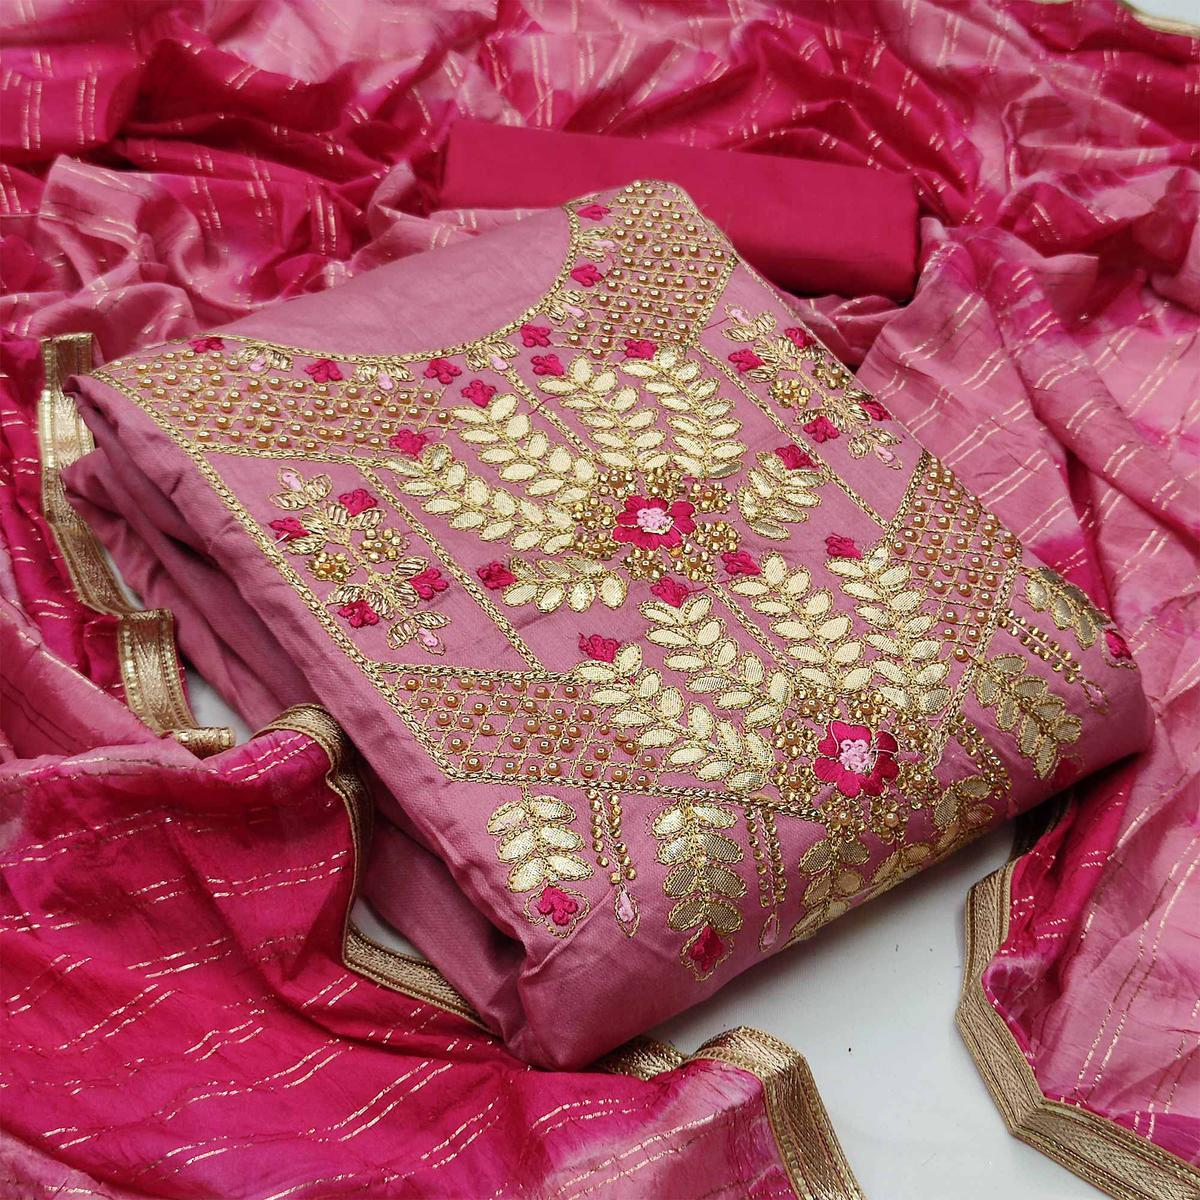 Light Pink Festive Wear Floral Embroidery With Hand Work Glass Cotton Dress Material